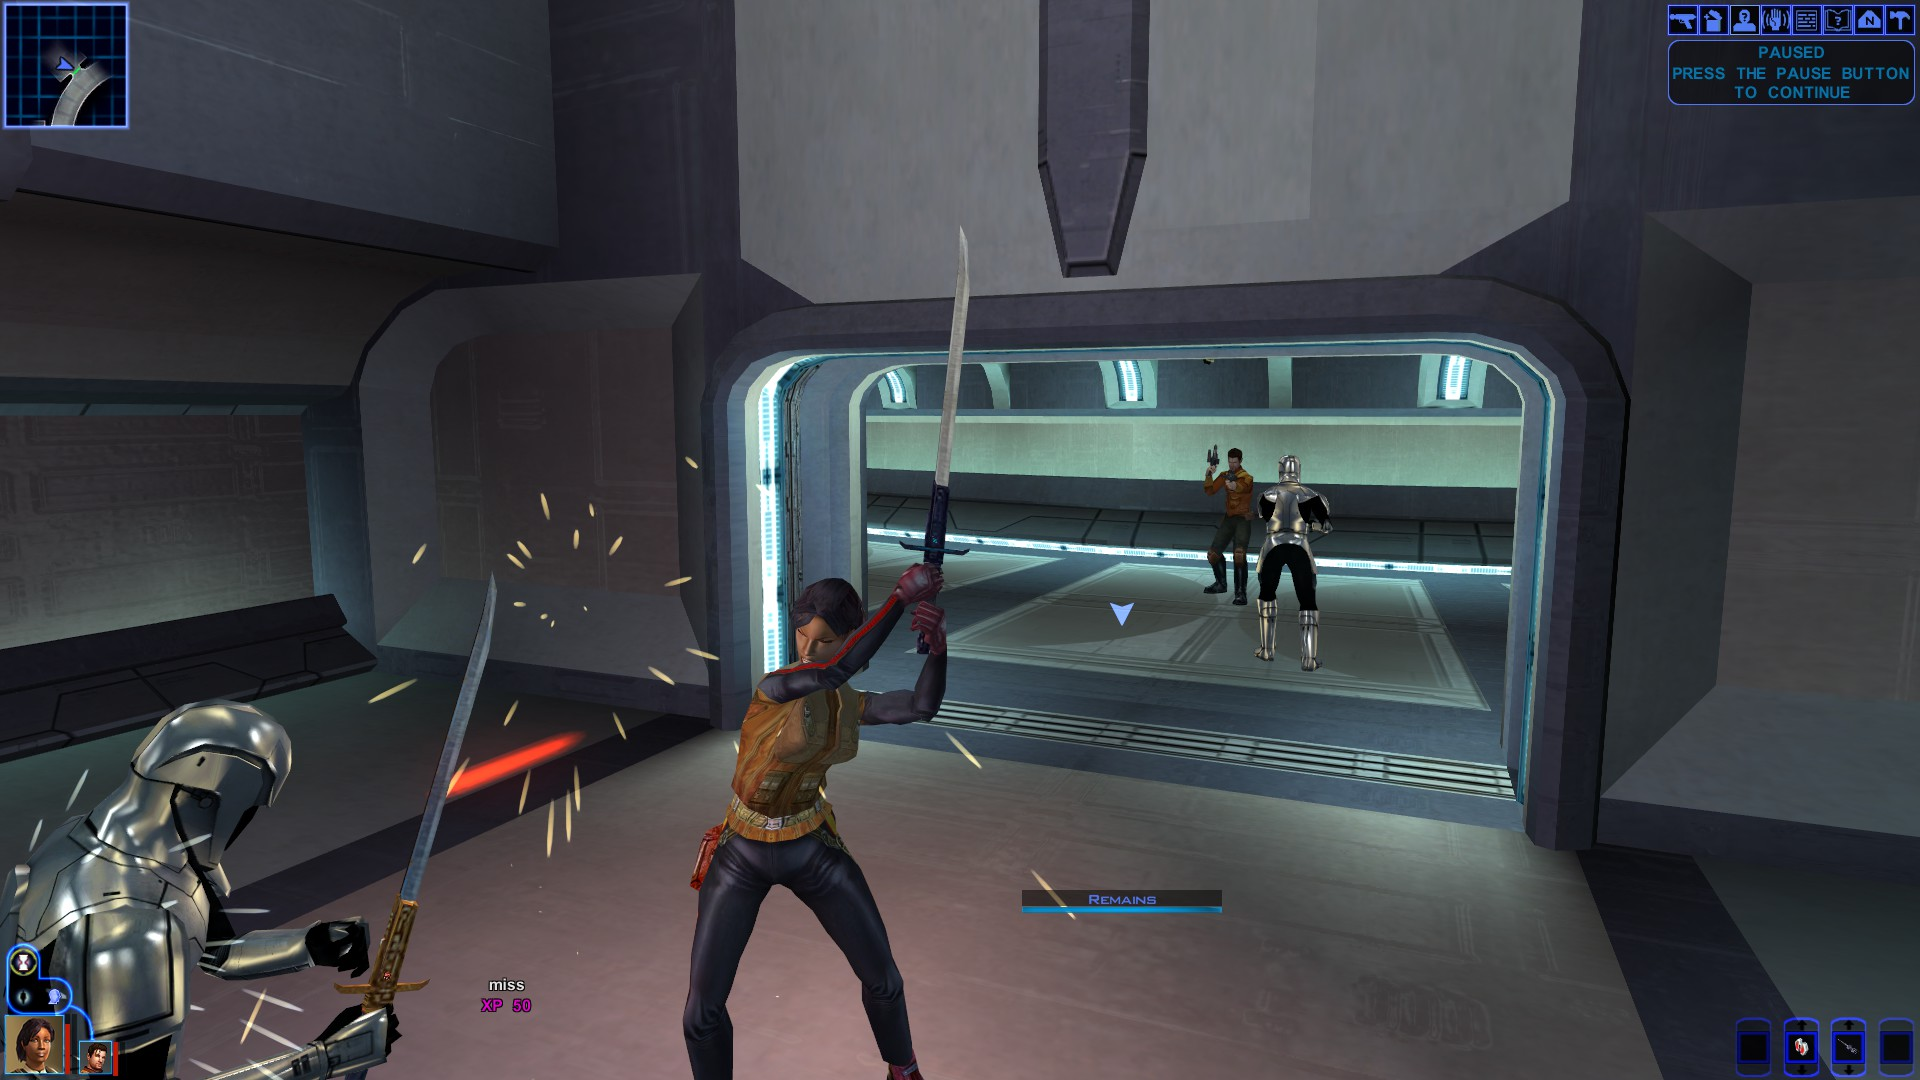 Steam Community :: Guide :: KOTOR 1 in HD: Correct Resolution Guide